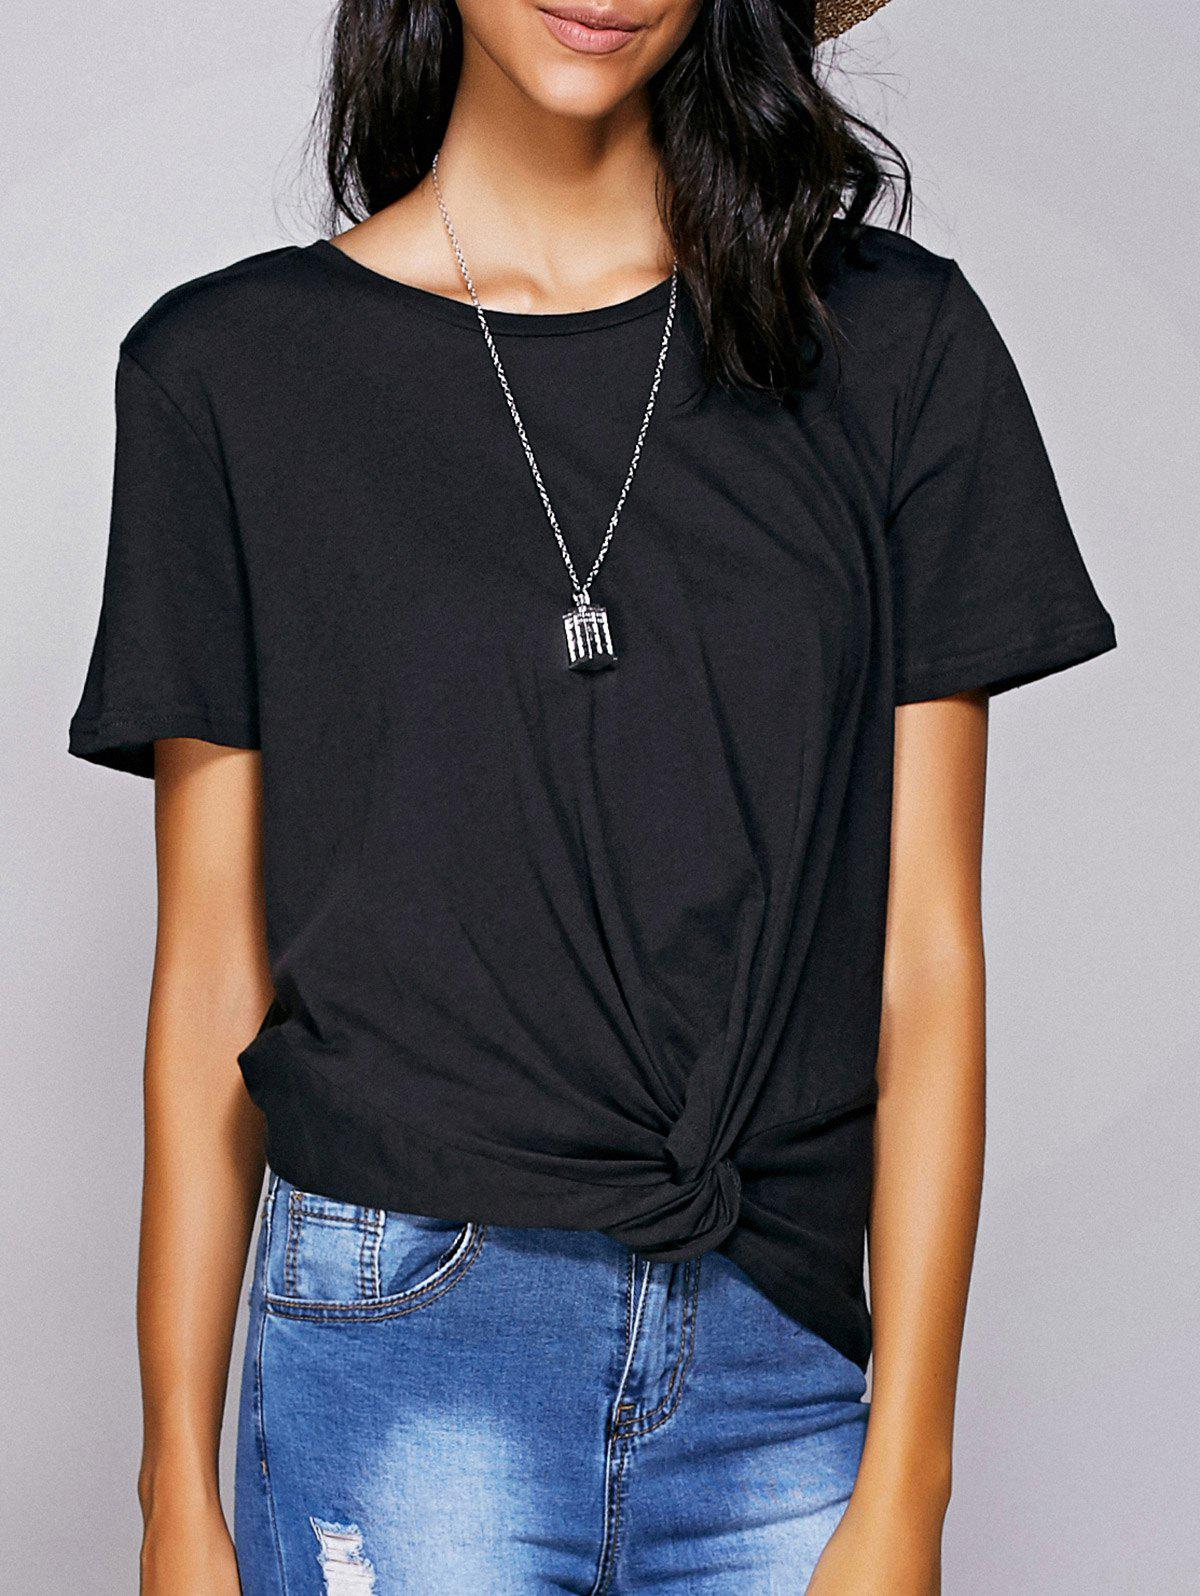 Casual Women's Round Neck Black Knot T-Shirt - BLACK L